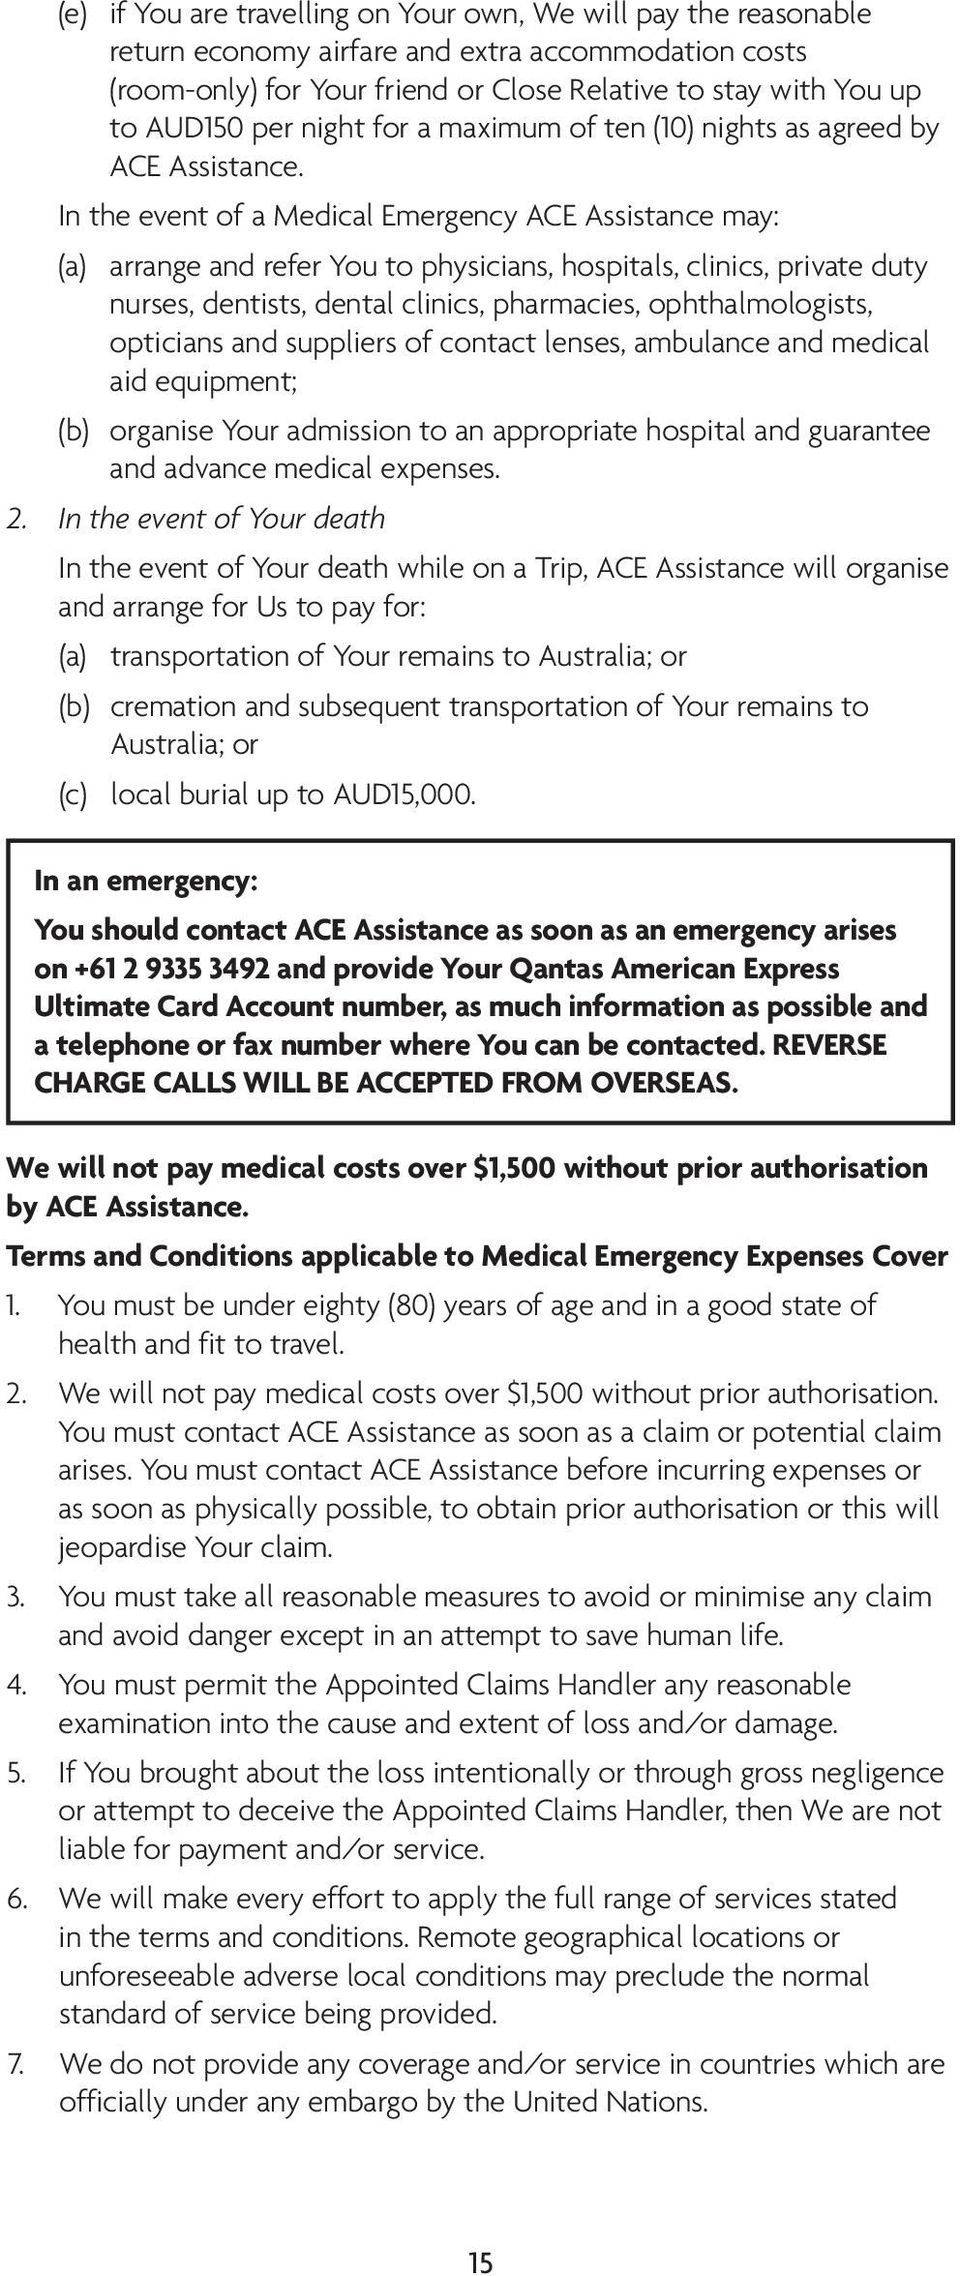 In the event of a Medical Emergency ACE Assistance may: (a) arrange and refer You to physicians, hospitals, clinics, private duty nurses, dentists, dental clinics, pharmacies, ophthalmologists,